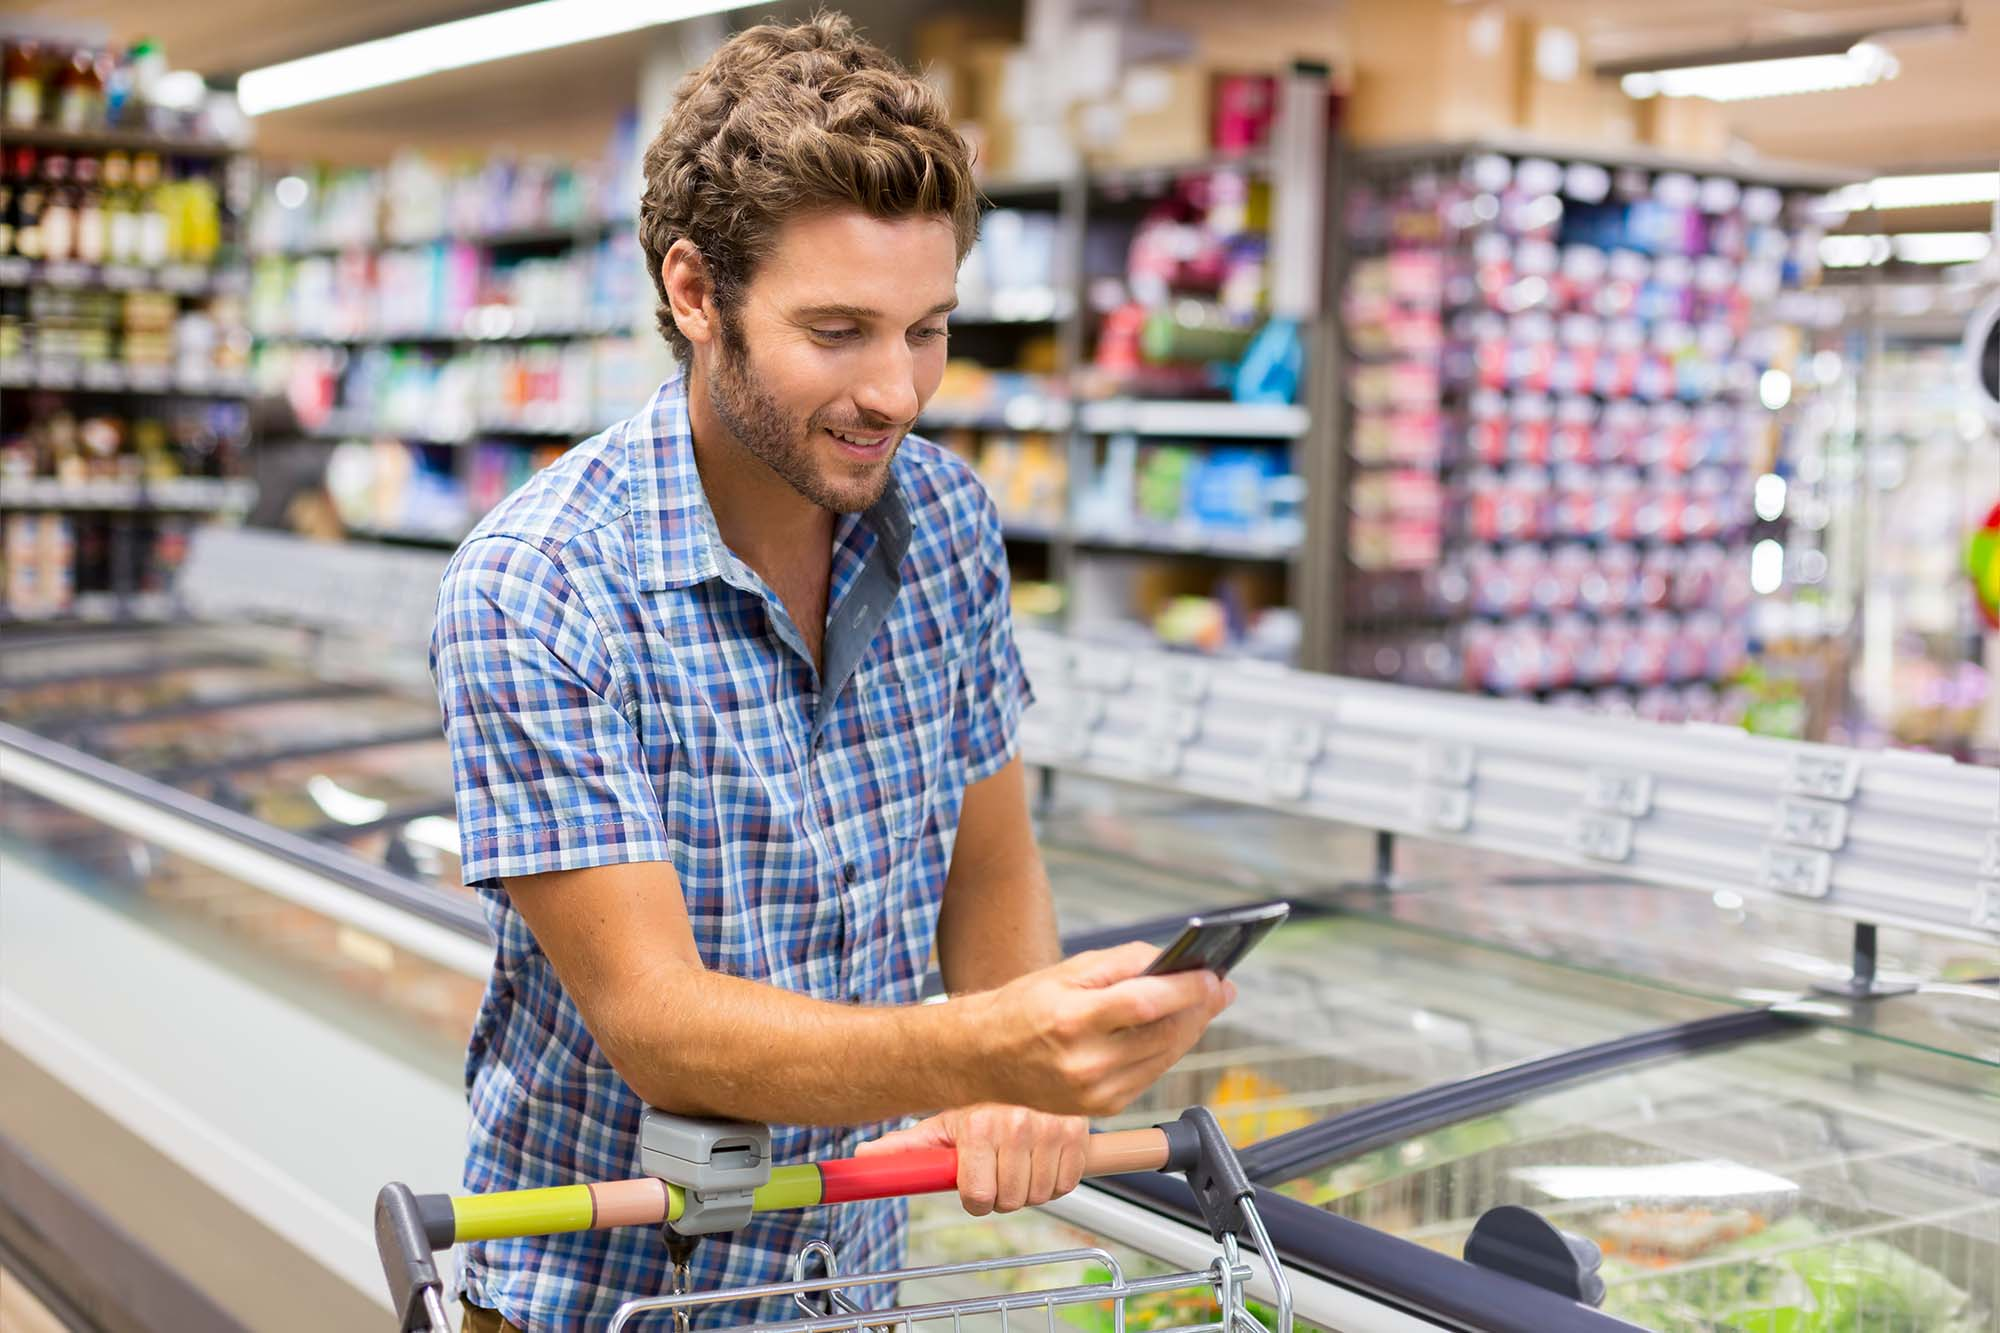 How is this generation re-shaping the CPG industry, and how can CPG brands unify experiences across channels?